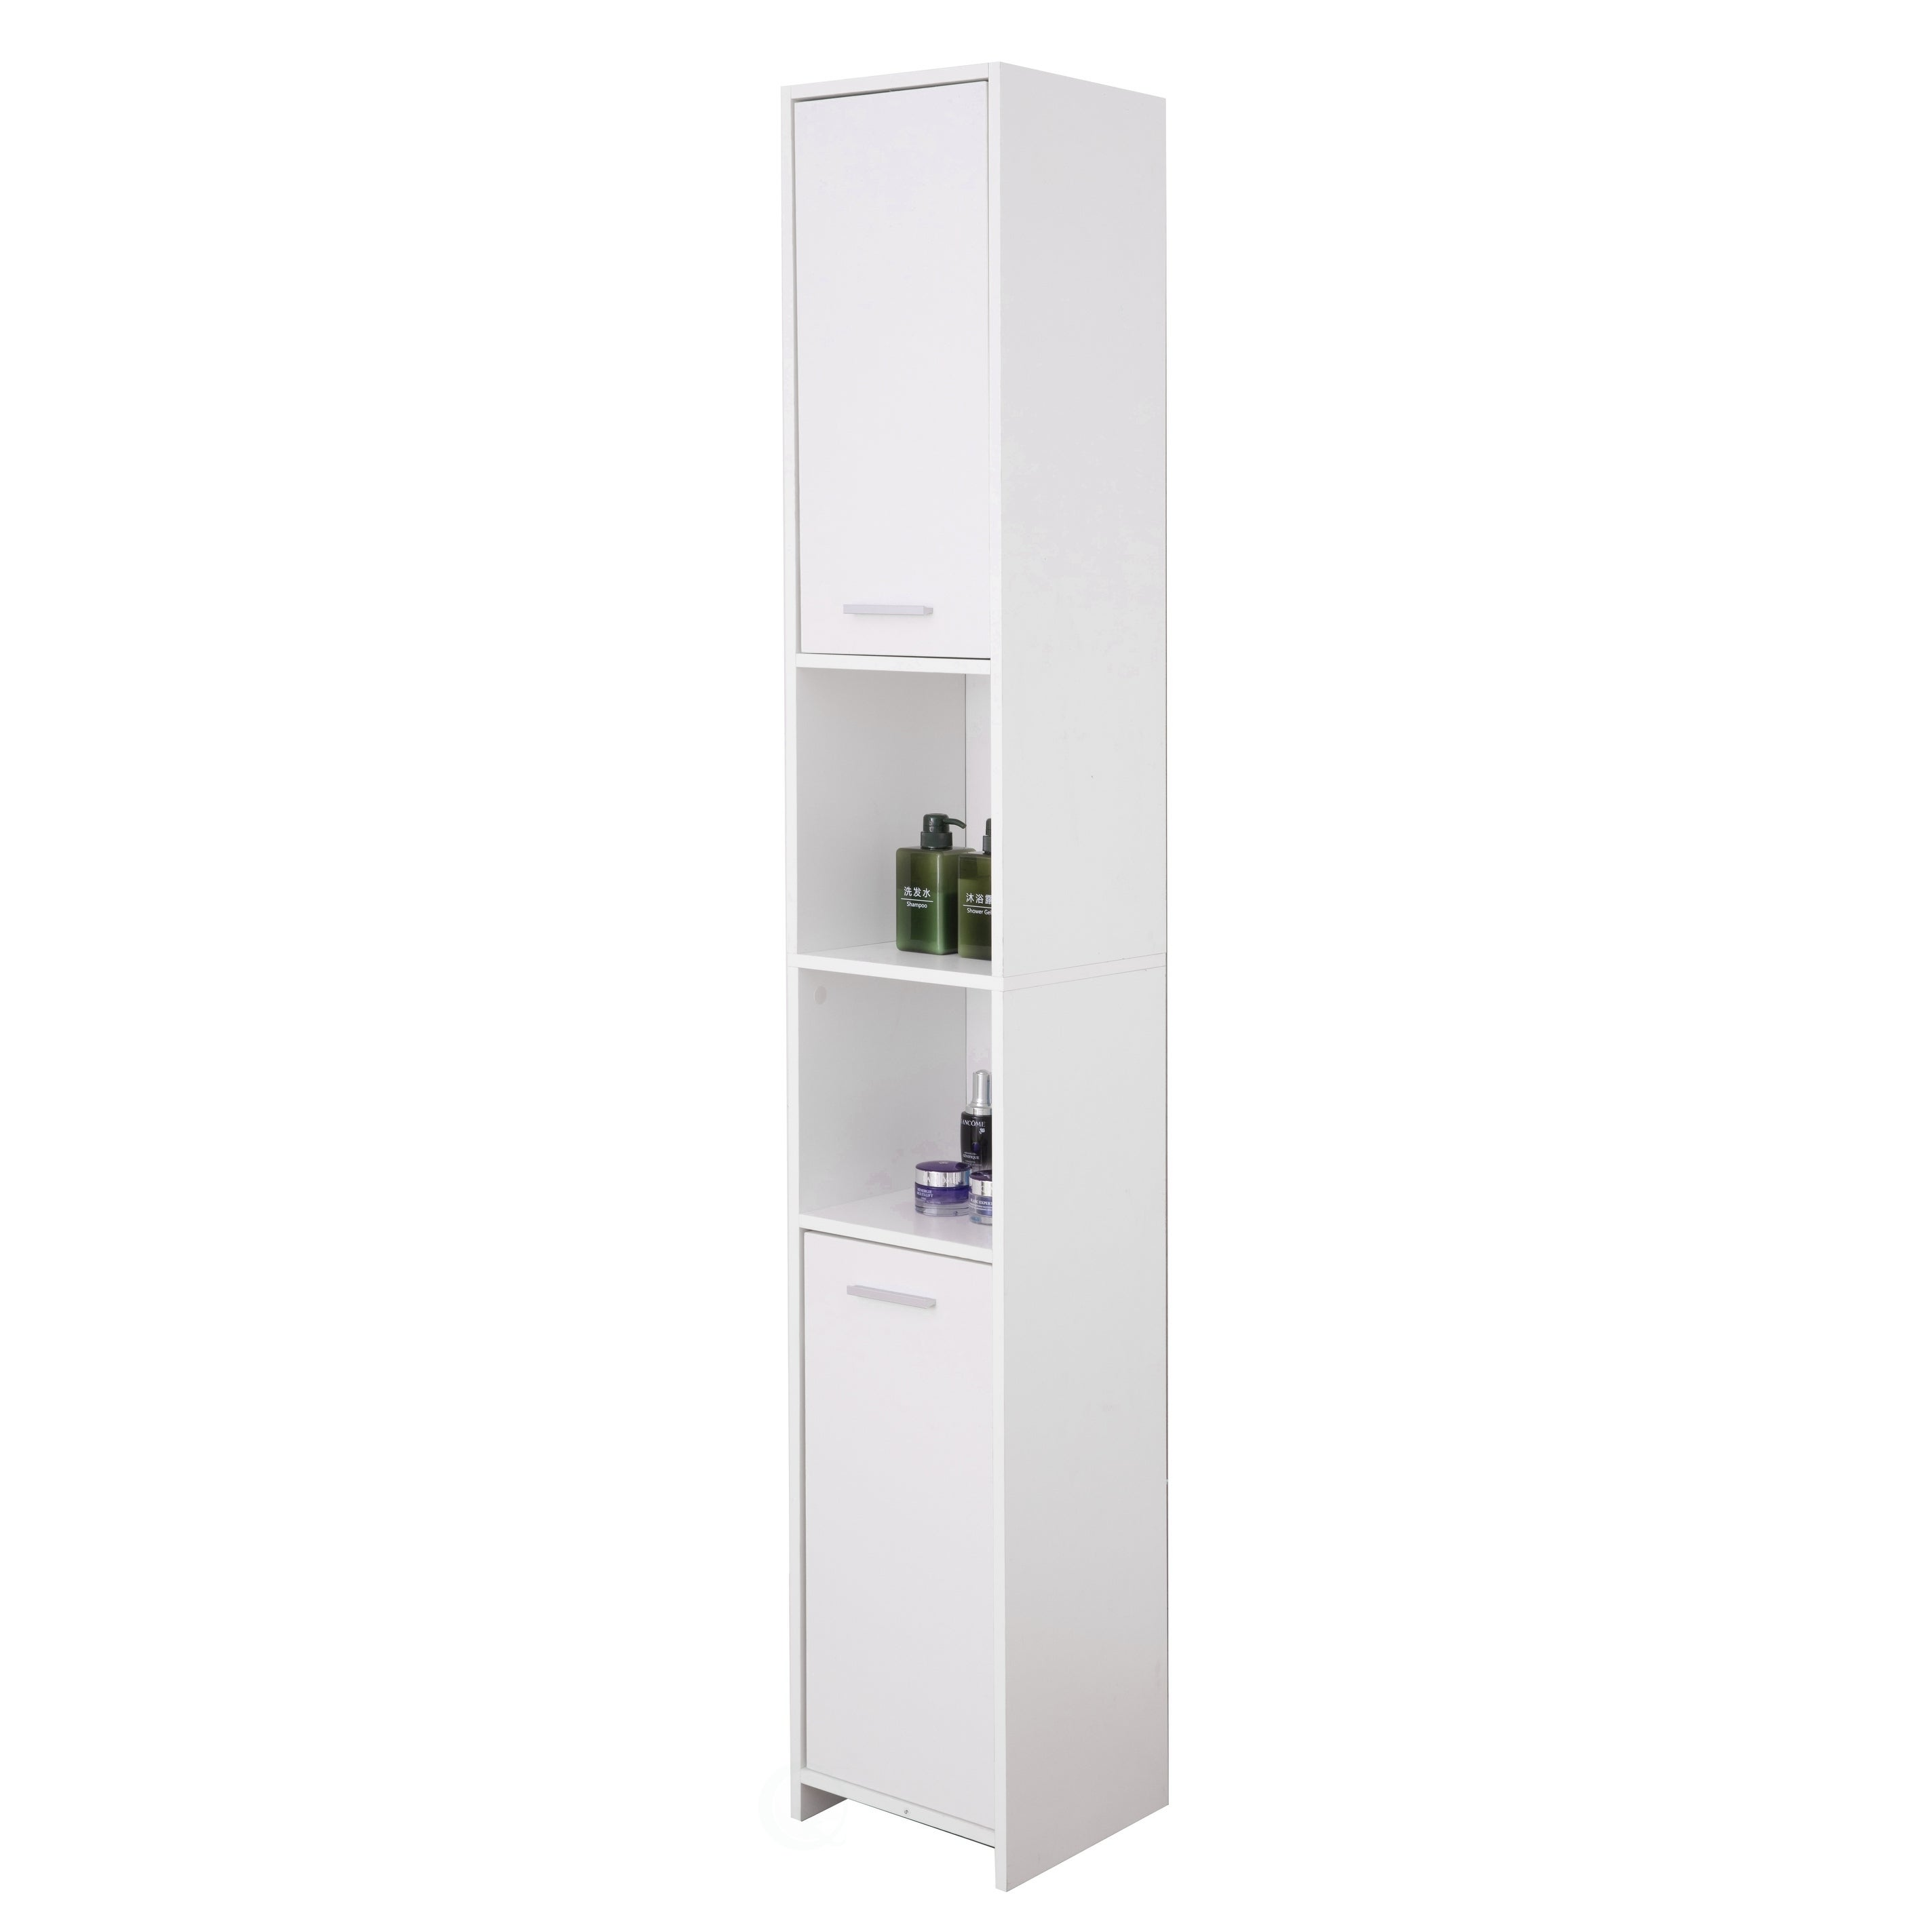 Standing Bathroom Linen Tower Storage Cabinet White On Sale Overstock 29057222